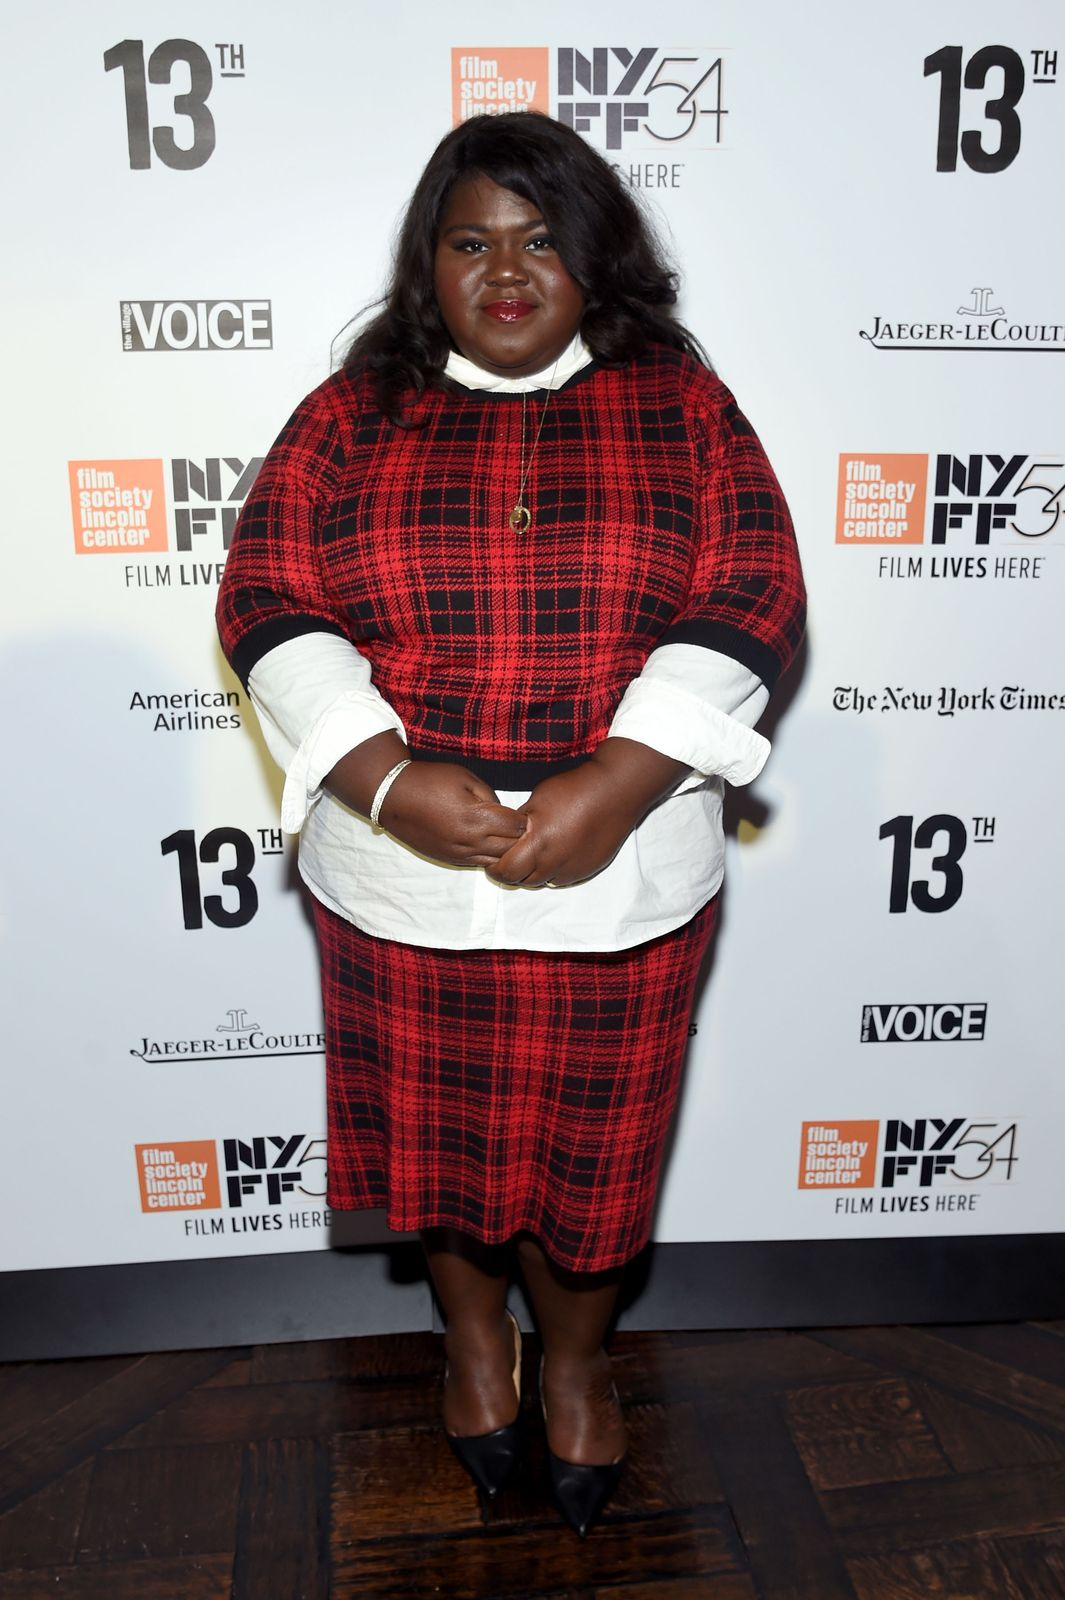 Gabourey Sidibe at the New York Film Festival Opening Night Party on September 30, 2016 in New York City. | Source: Getty Images